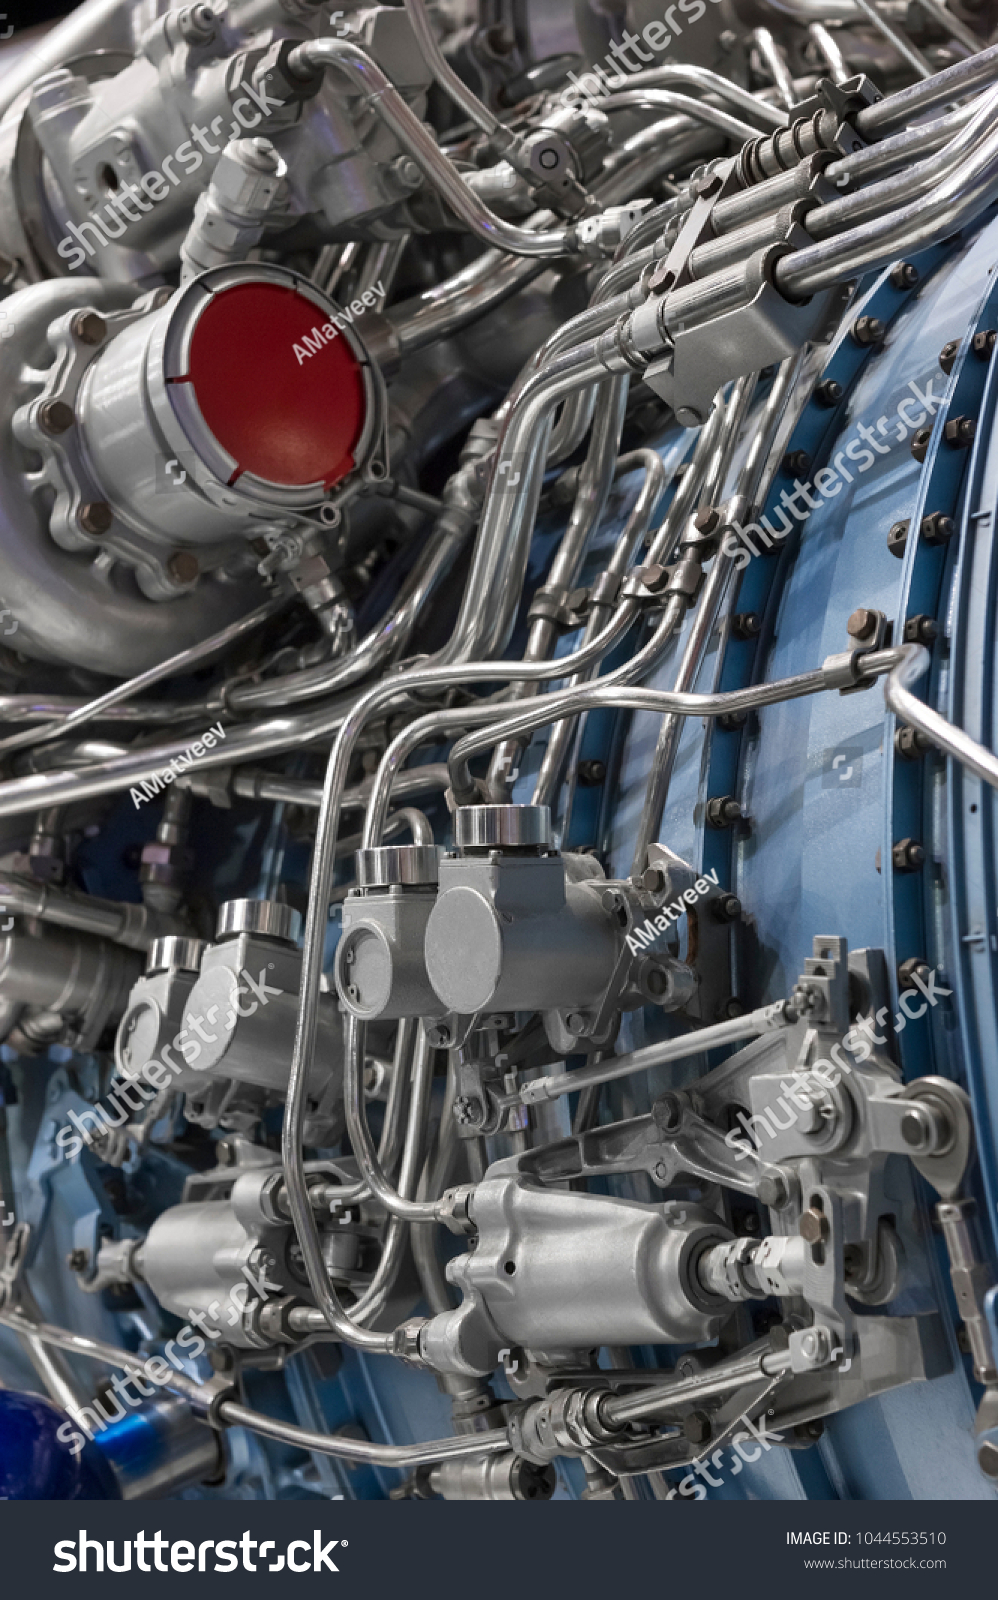 Engine Fighter Jet Internal Structure Hydraulic Stock Photo ...